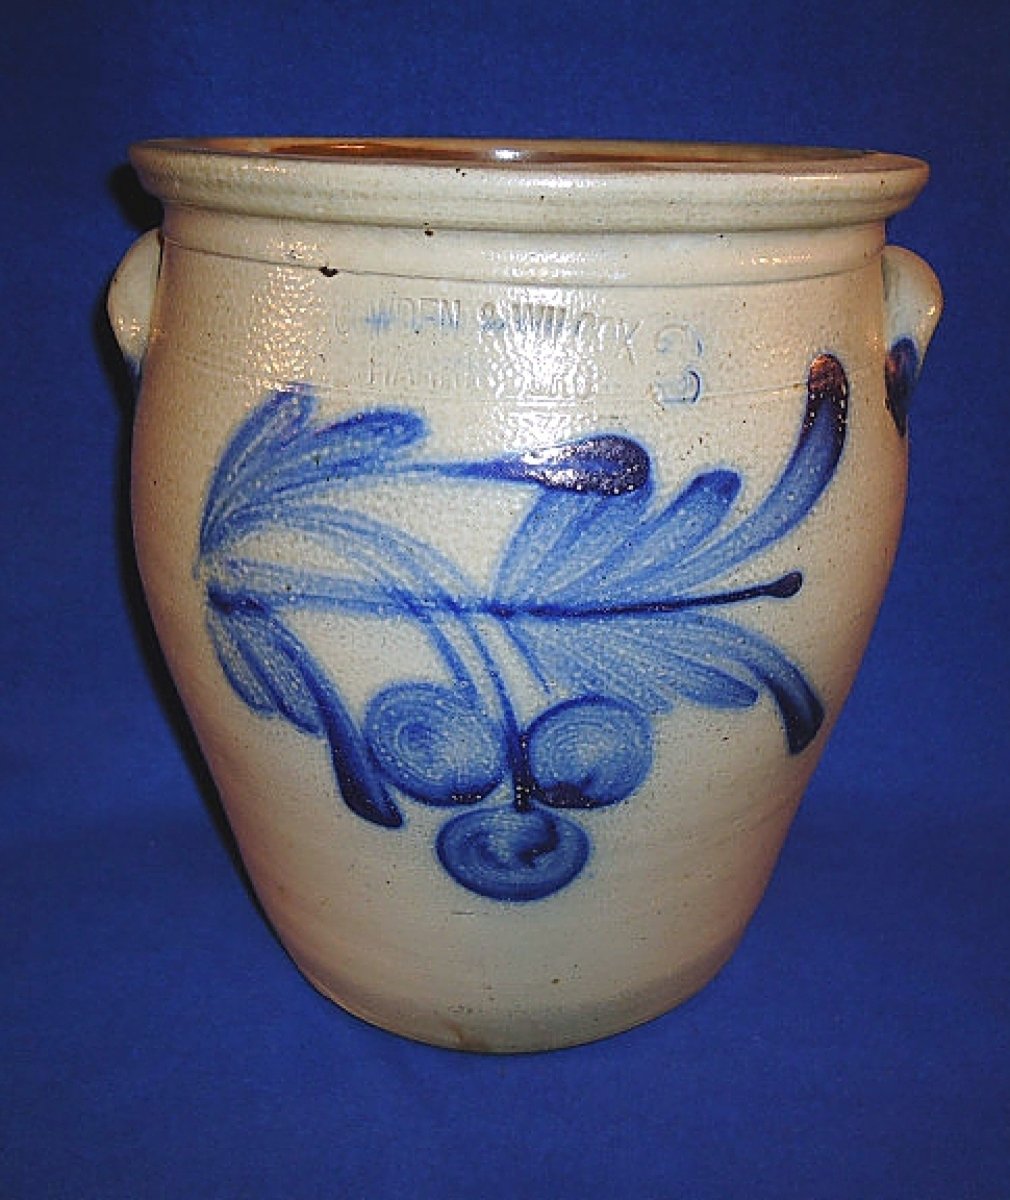 Stoneware was a popular item at the show and Duane Watson of Doc's Crocks, Ashland, Ohio, sold this 3-gallon cream pot with cherry cluster decoration, made by Cowden & Wilcox, Harrisburg, Penn, between 1863 and 1880.